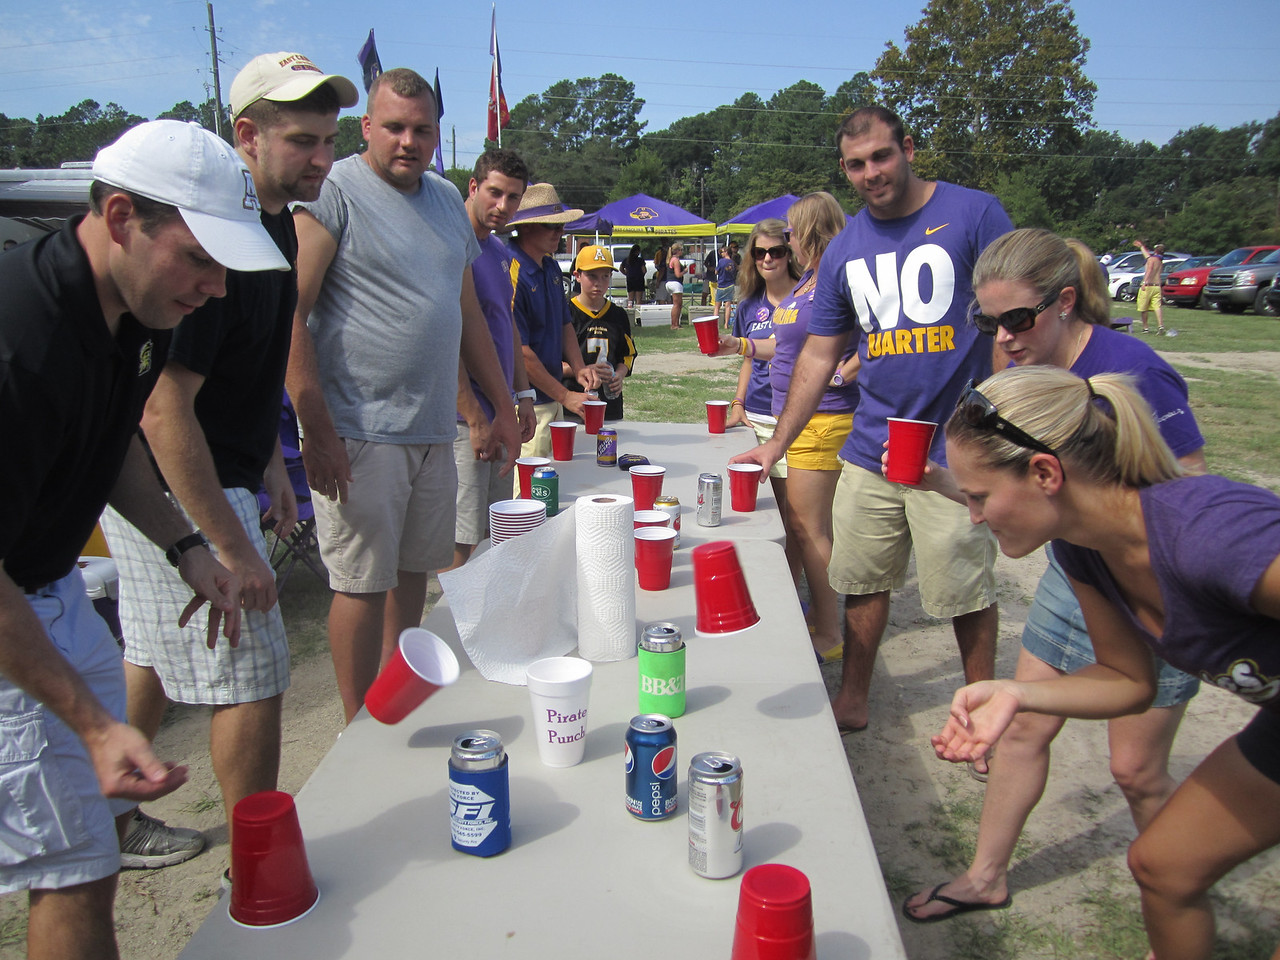 9/1 ECU vs App State Flip cup (the kid at the end was playing with water)